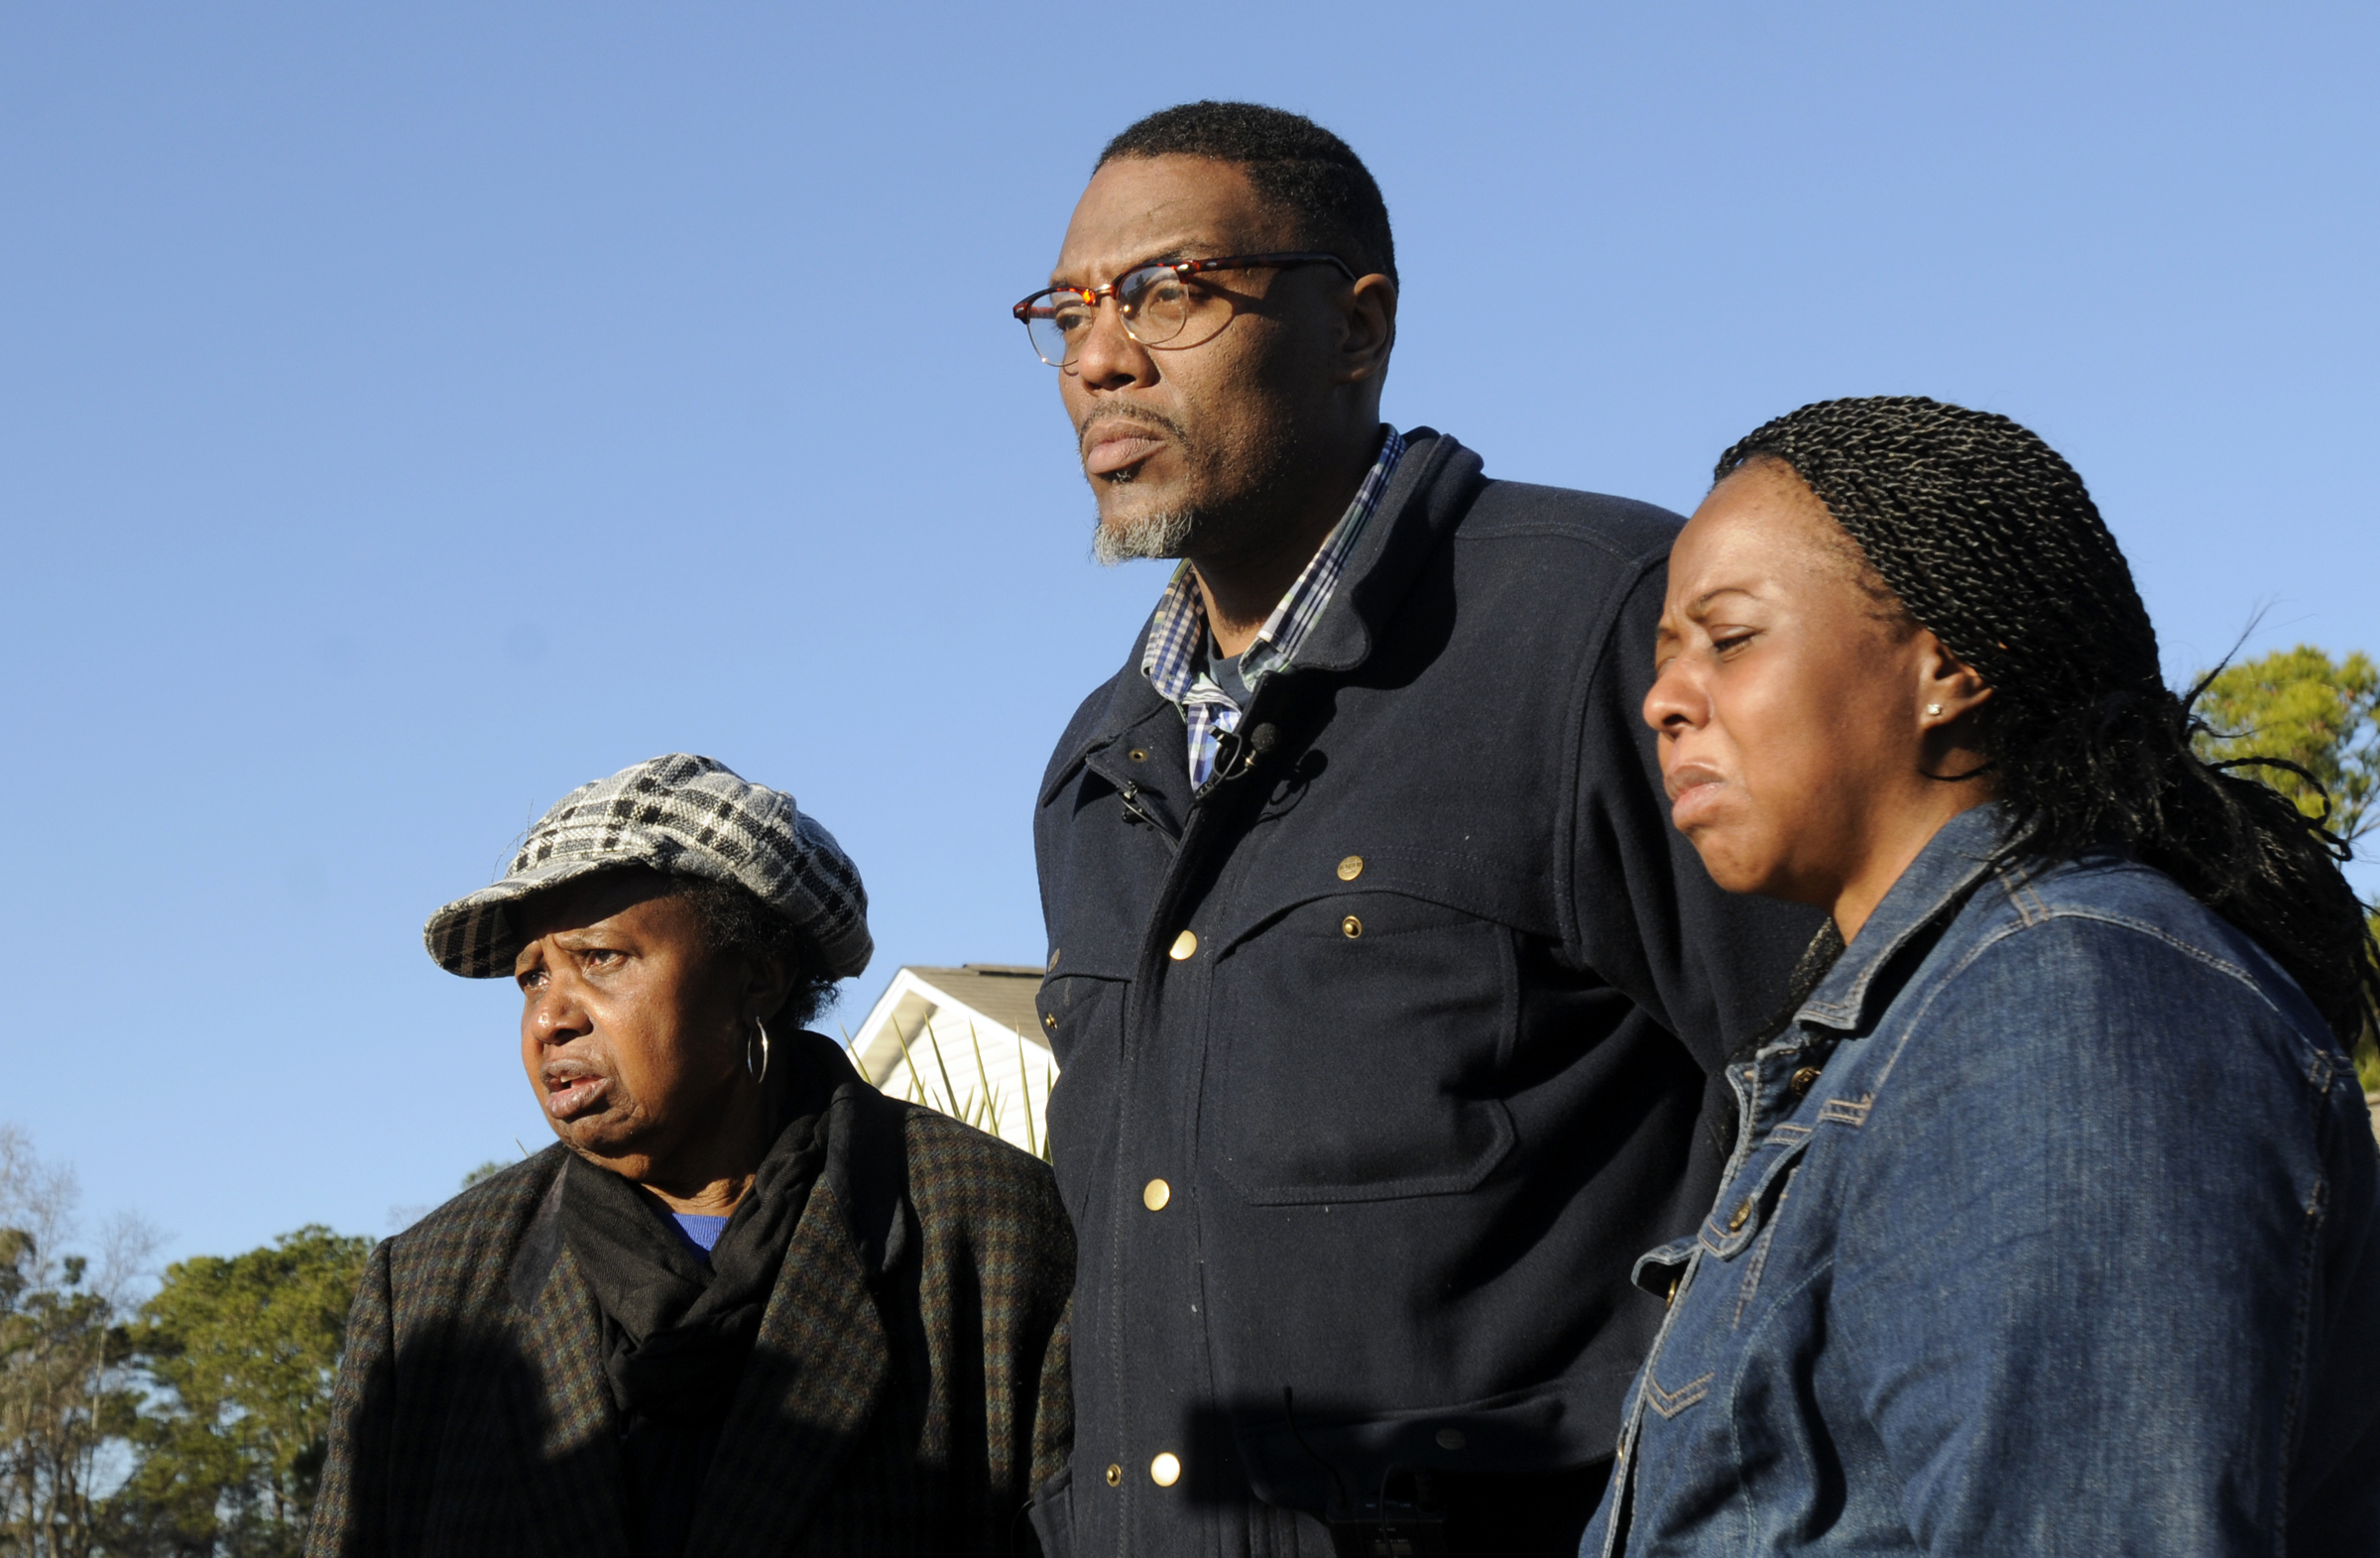 The family of missing Jayden Morrison, from left, his grandmother, Carolyn Sumpter, father, Andre Morrison and mother Tabatha Morrison look on during search efforts in Little River, S.C., on Dec. 25, 2014.